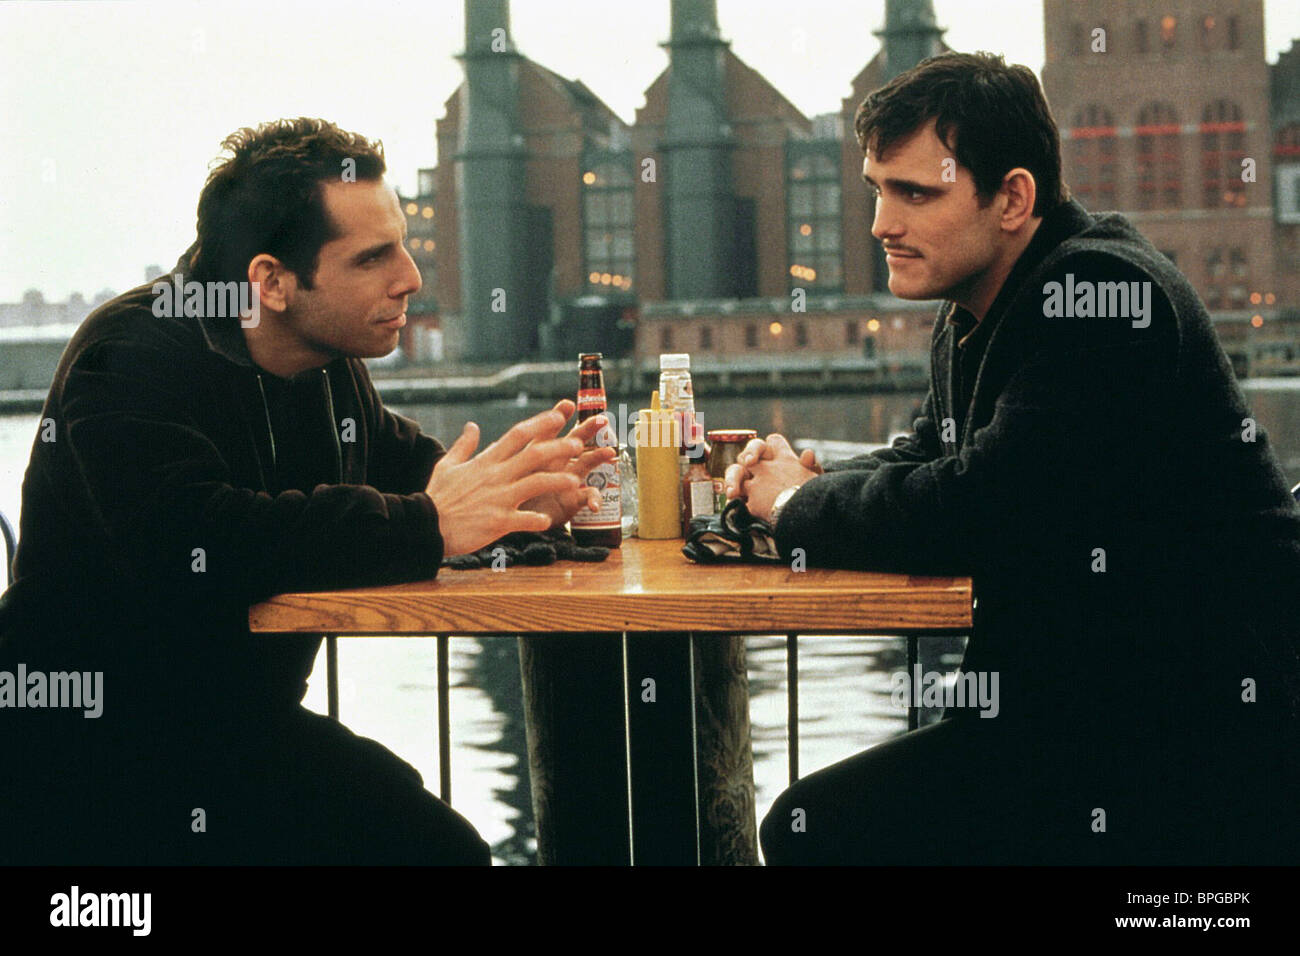 BEN STILLER, MATT DILLON, THERE'S SOMETHING ABOUT MARY, 1998 Stock Photo